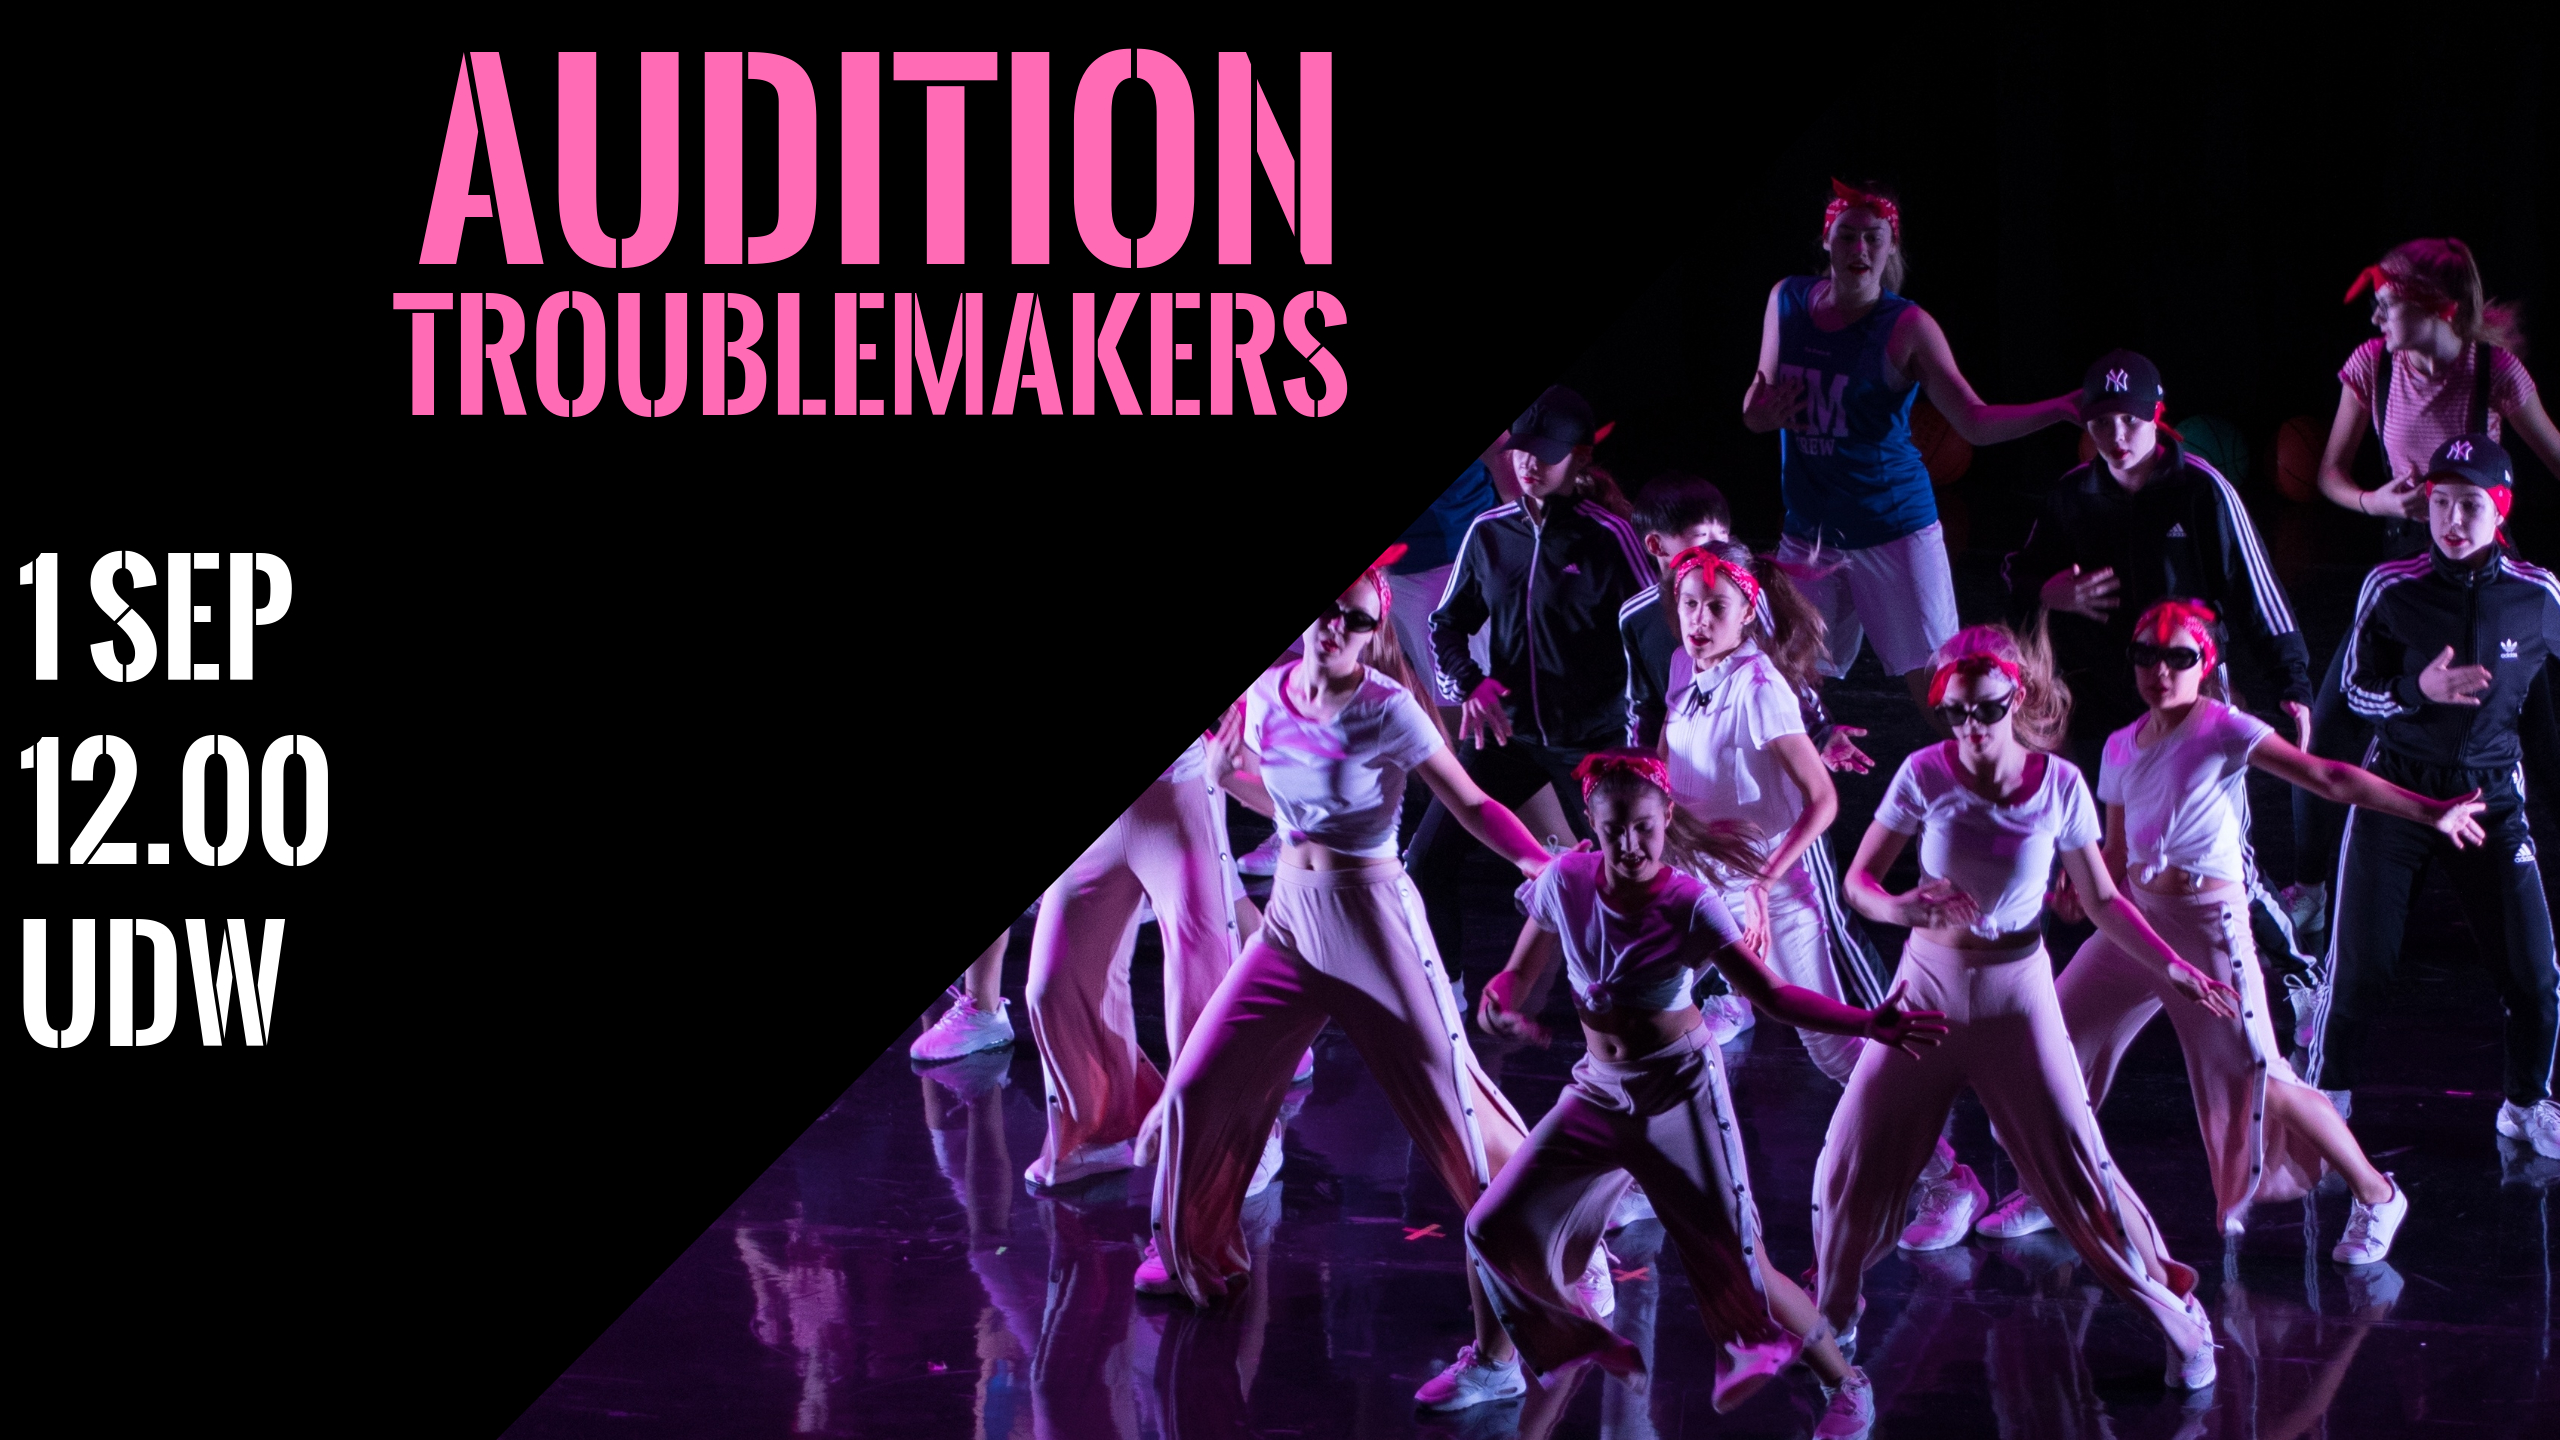 Audition TROUBLEMAKERS